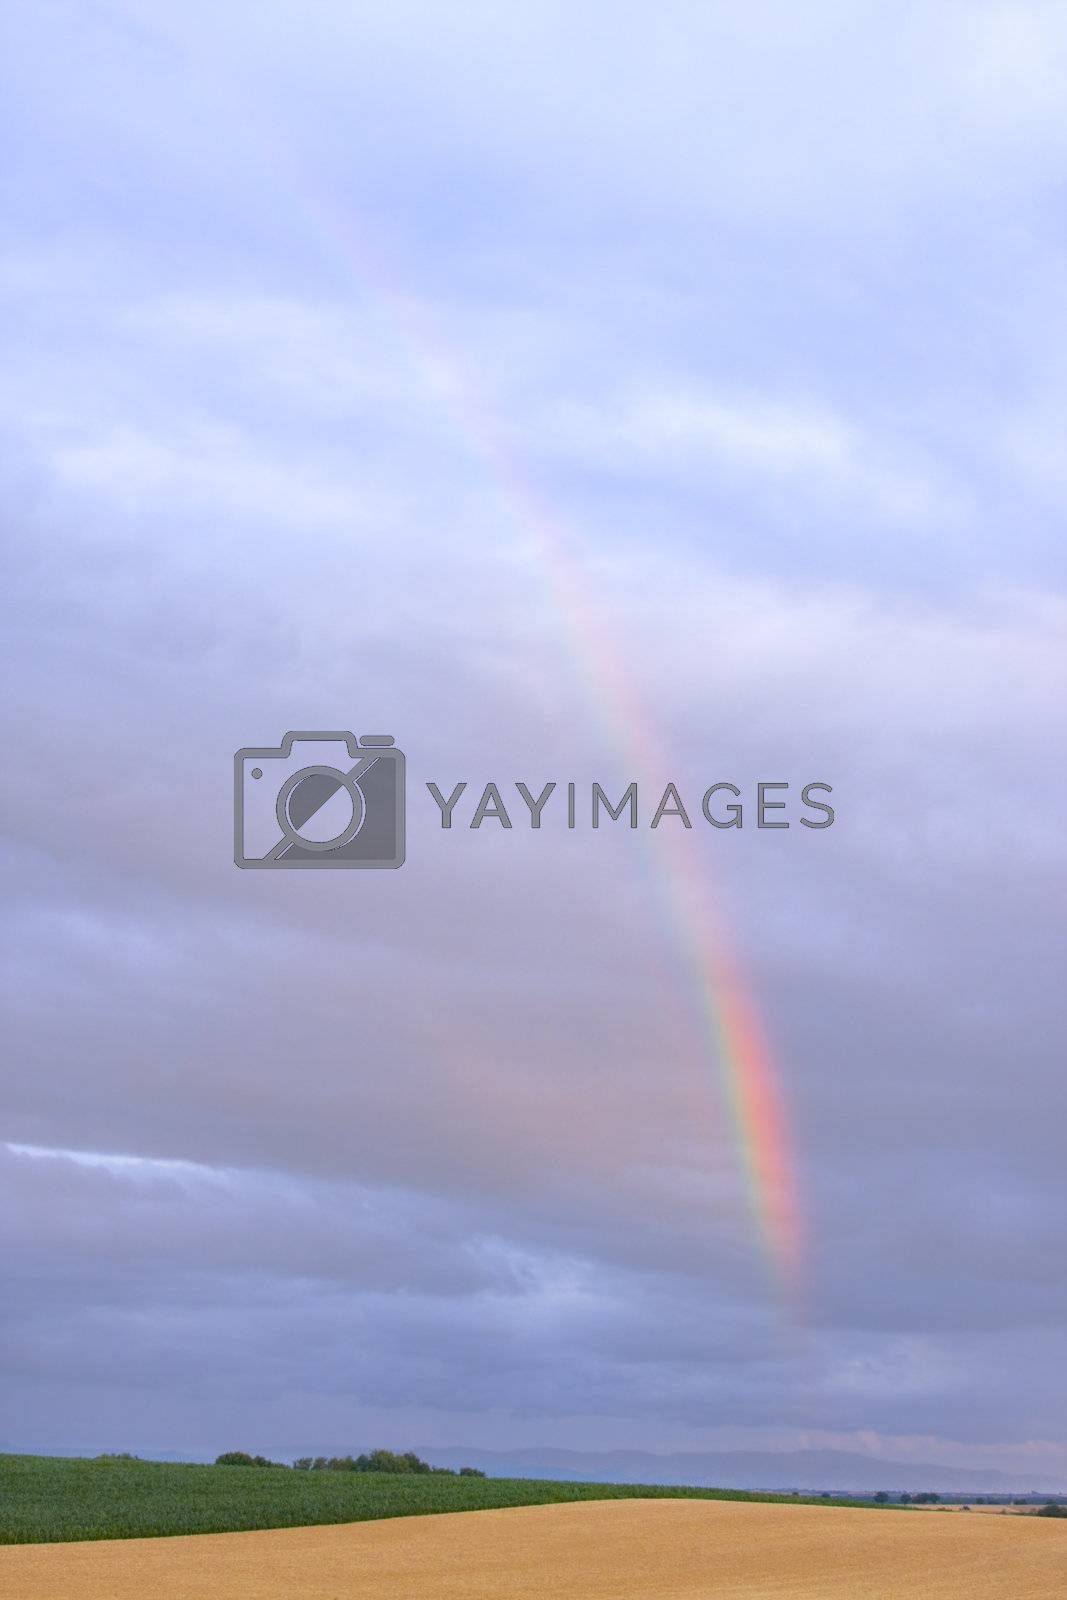 Colourful rainbow in a cloudy sky